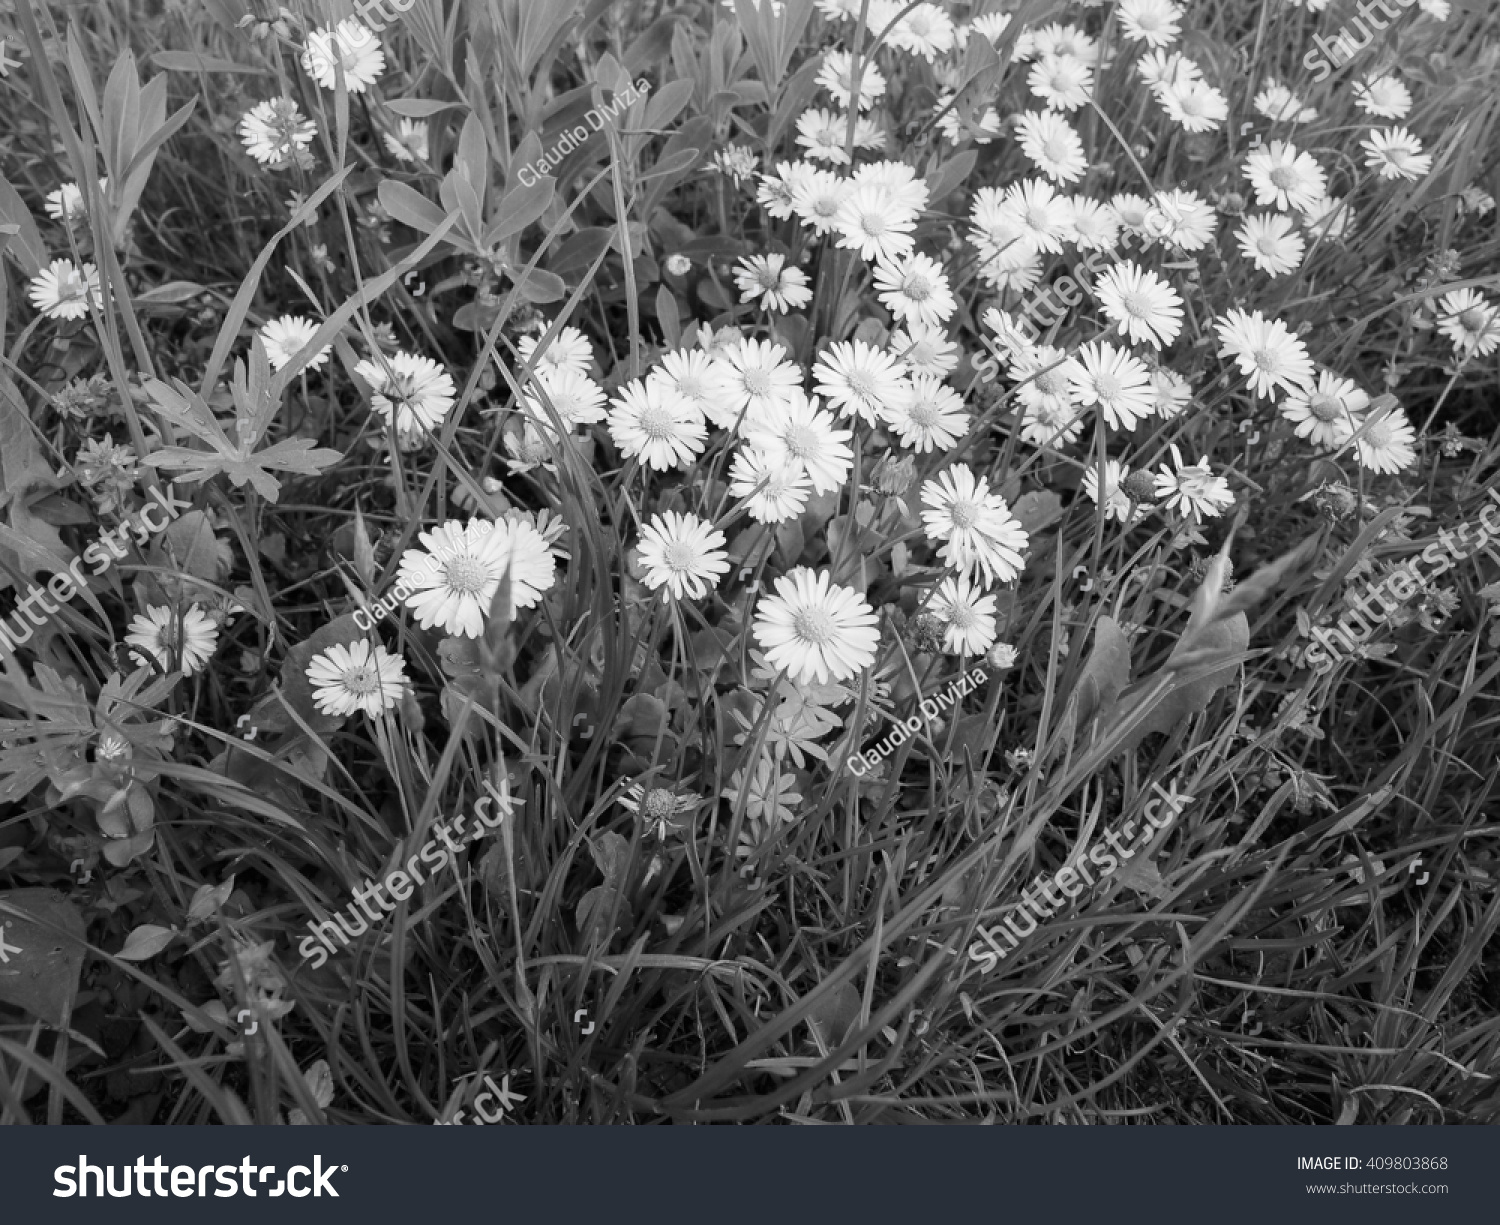 White Daisy Bellis Perennis Aka Common Daisy Or Lawn Daisy Or